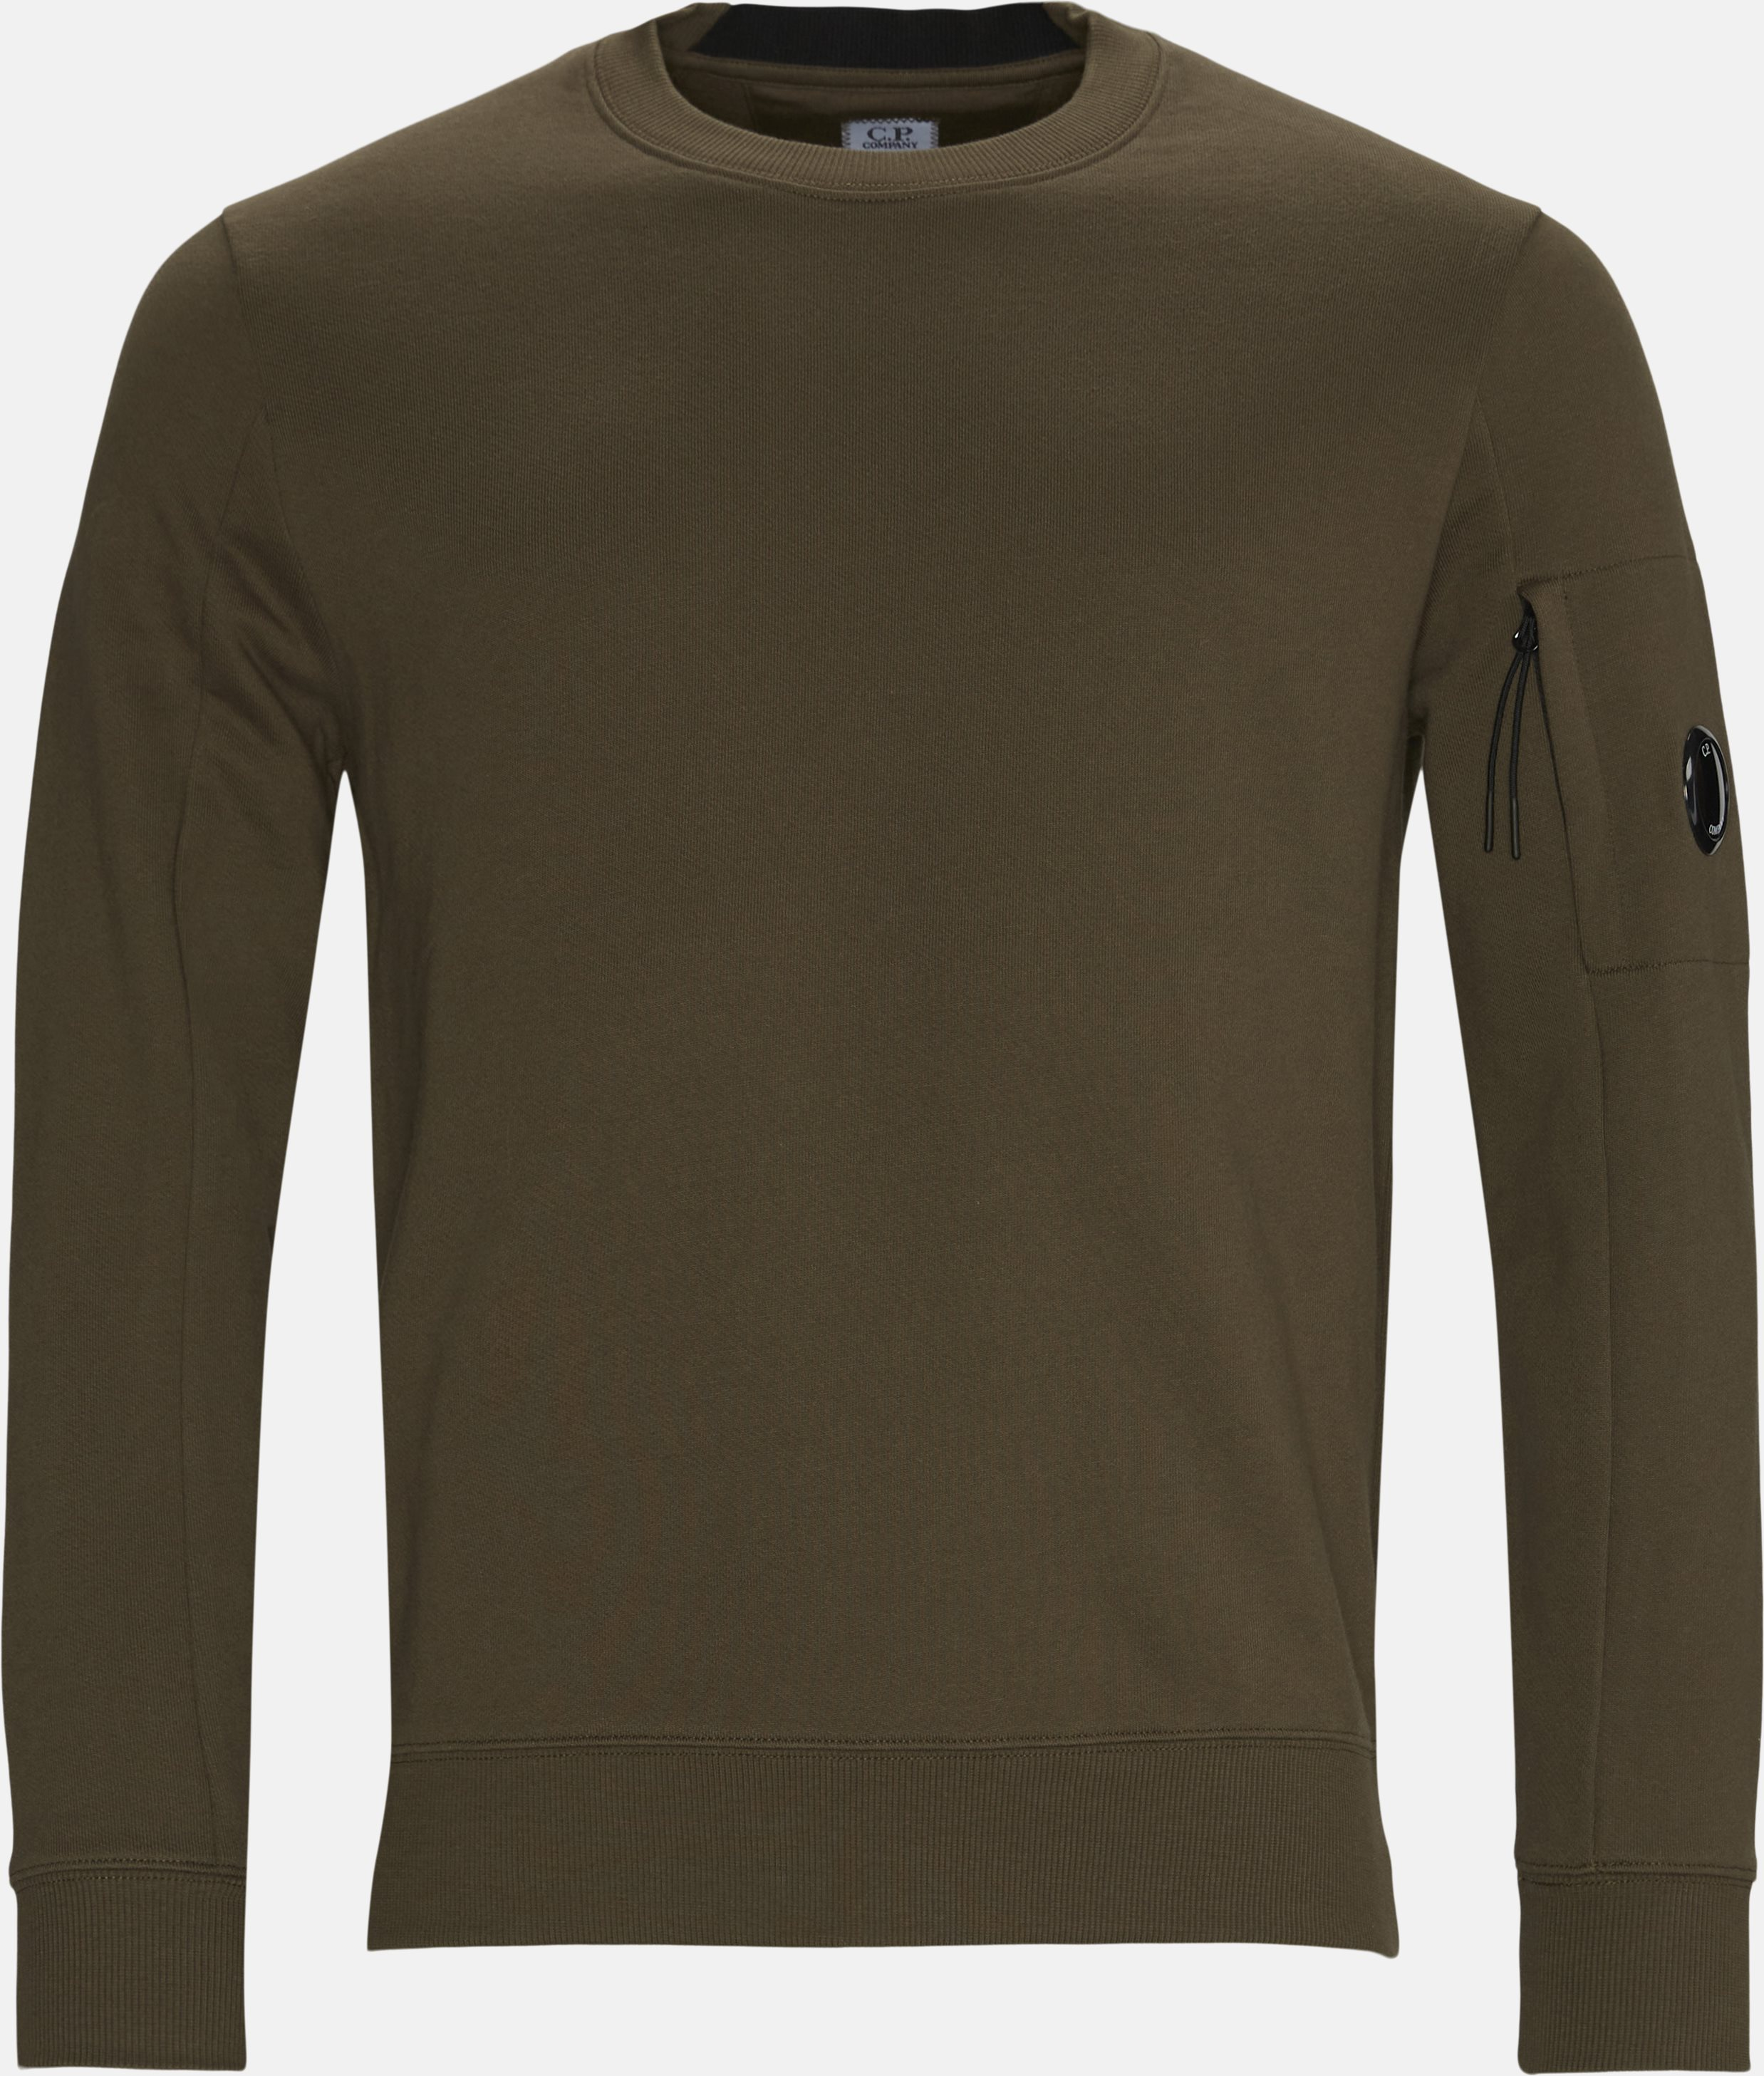 Garment Dyed Light Fleece Lens Crew Sweat - Sweatshirts - Regular - Army